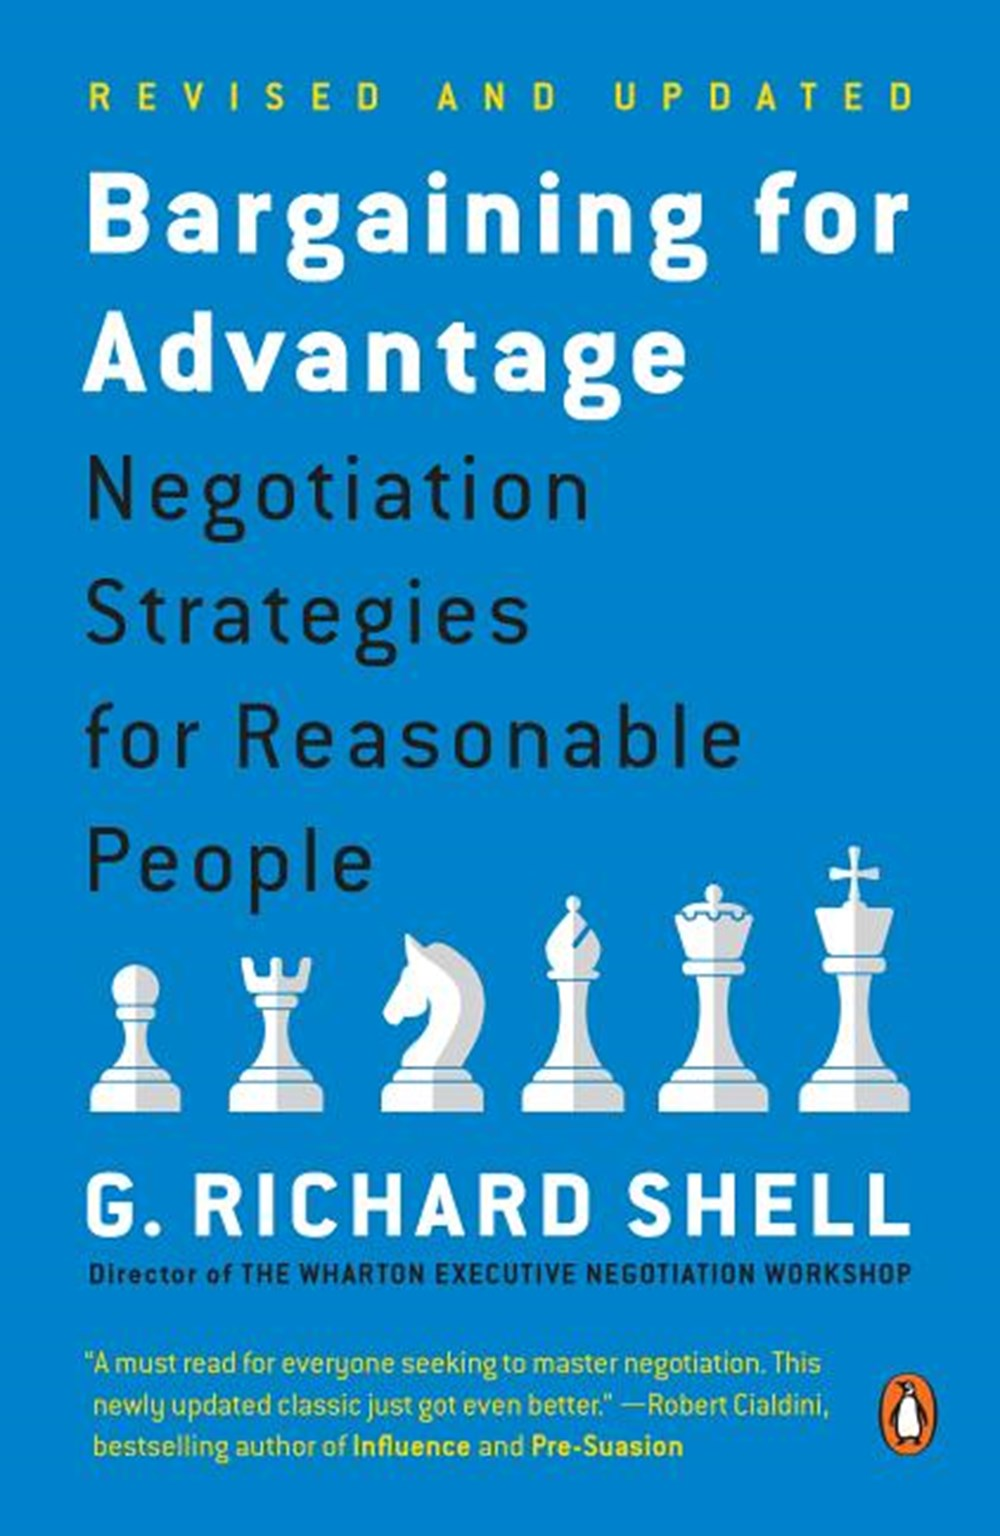 Bargaining for Advantage Negotiation Strategies for Reasonable People